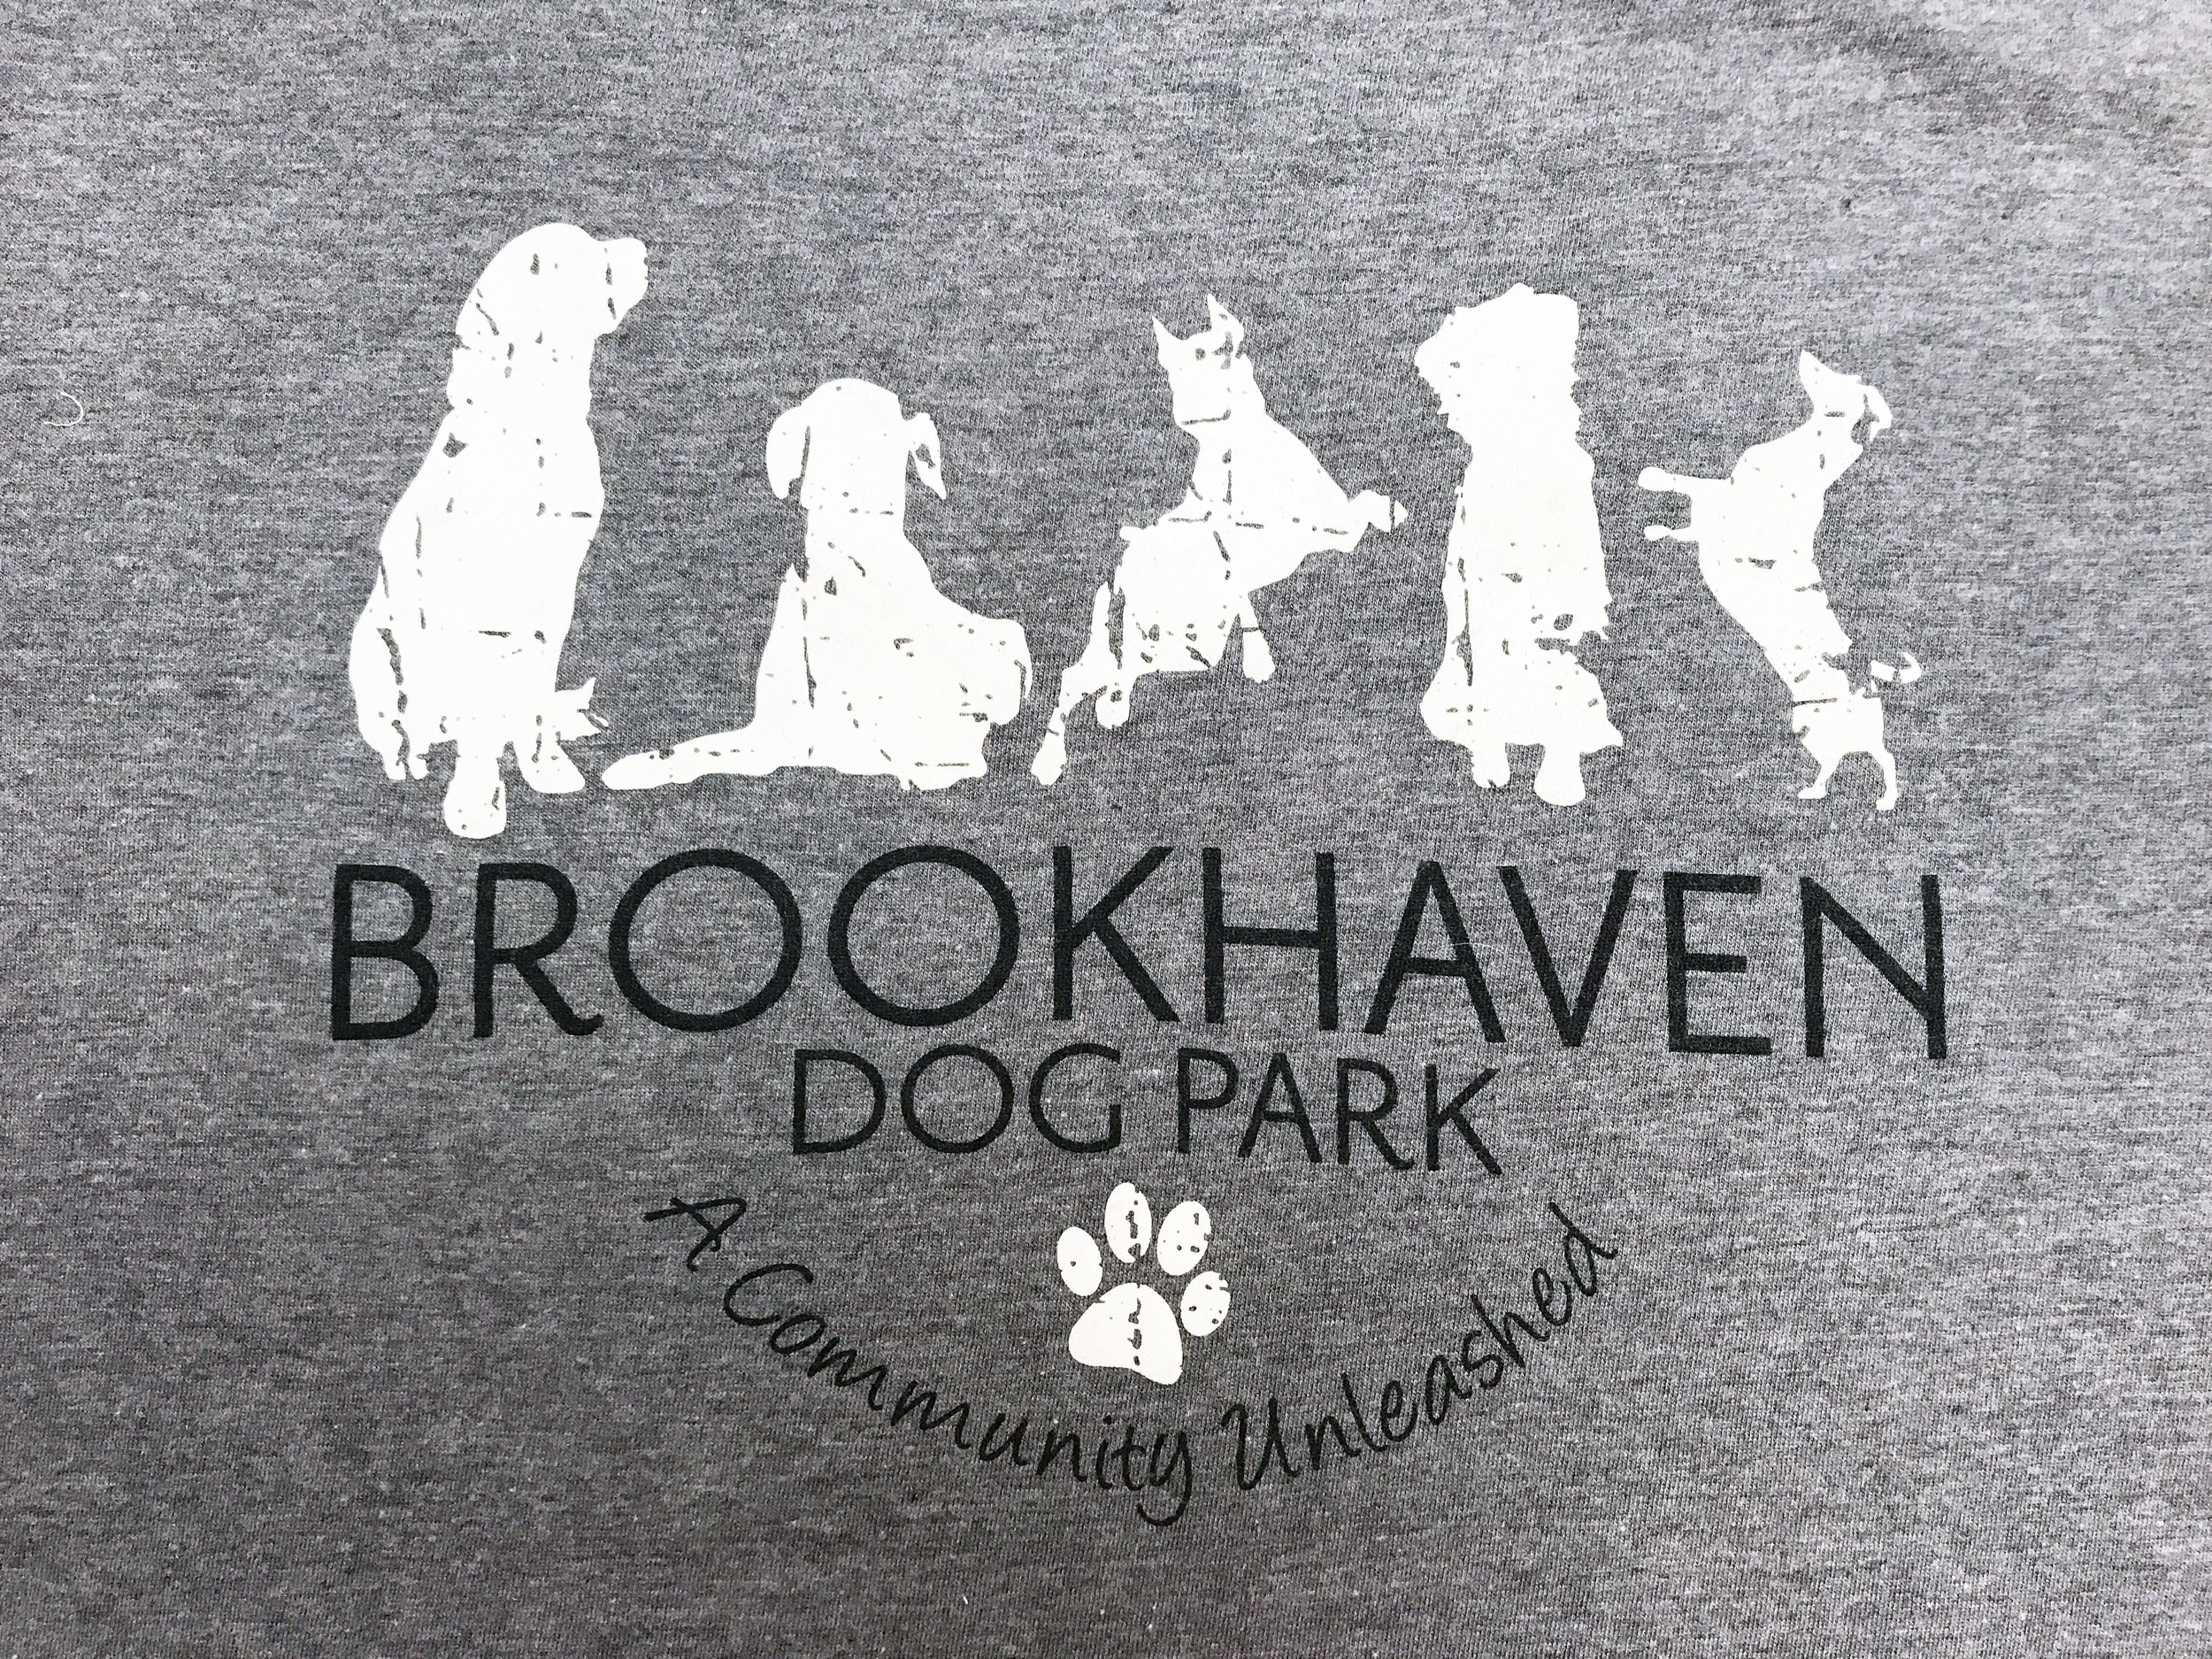 Represent your community and help raise funds for the park - Shop the latest t-shirt designs available at First Friday Events!